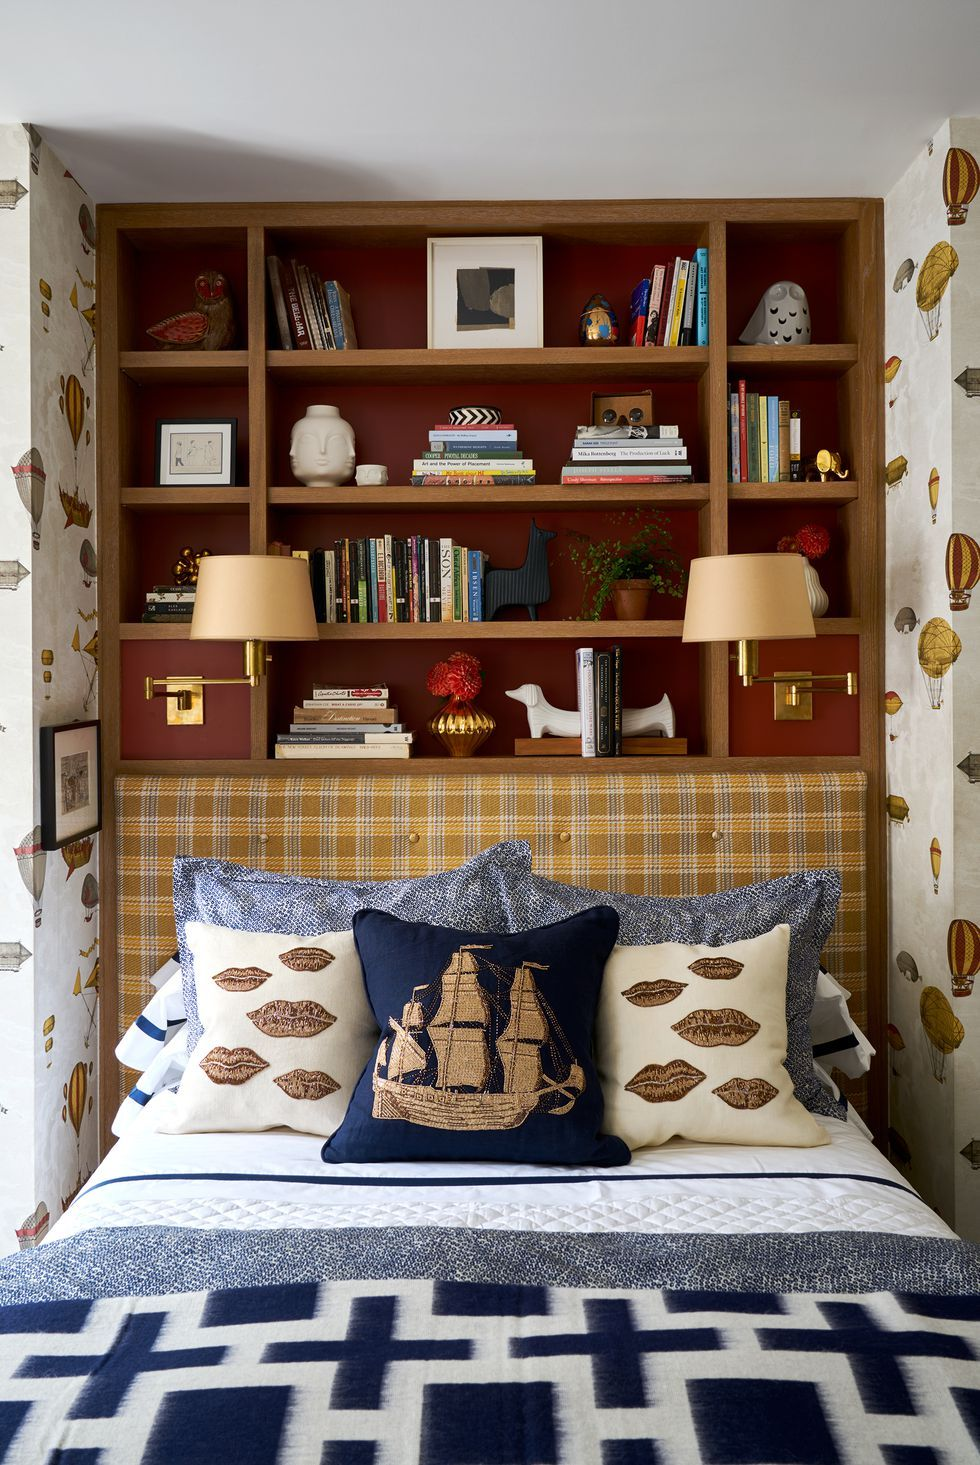 30 Small Bedroom Design Ideas - How to Decorate a Small ...